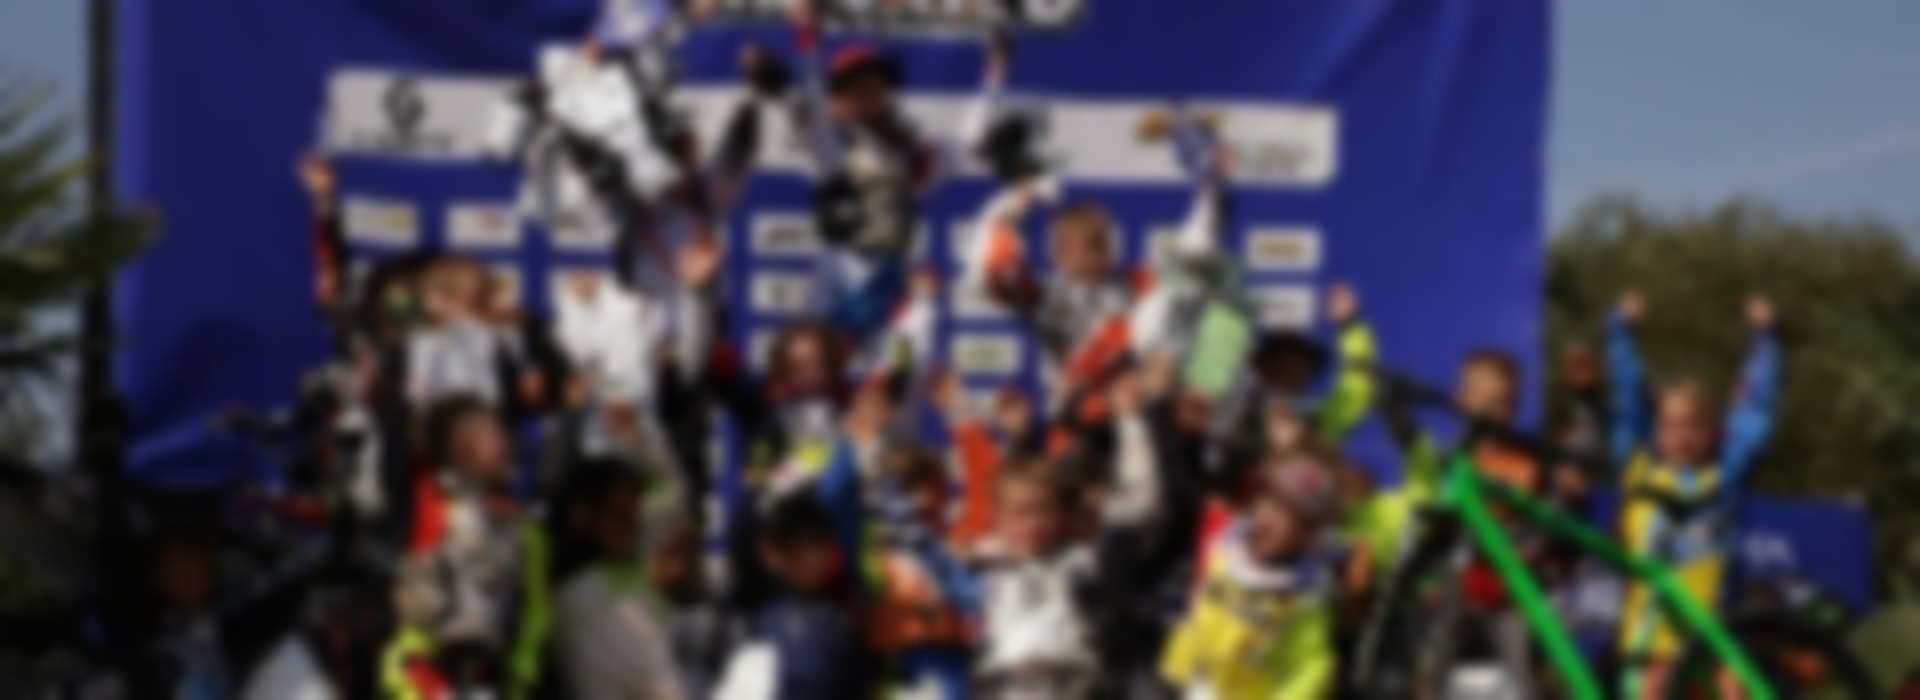 COMPETITION EUROPEENNE DE MOTOCROSS - ROOKIE'S CUP